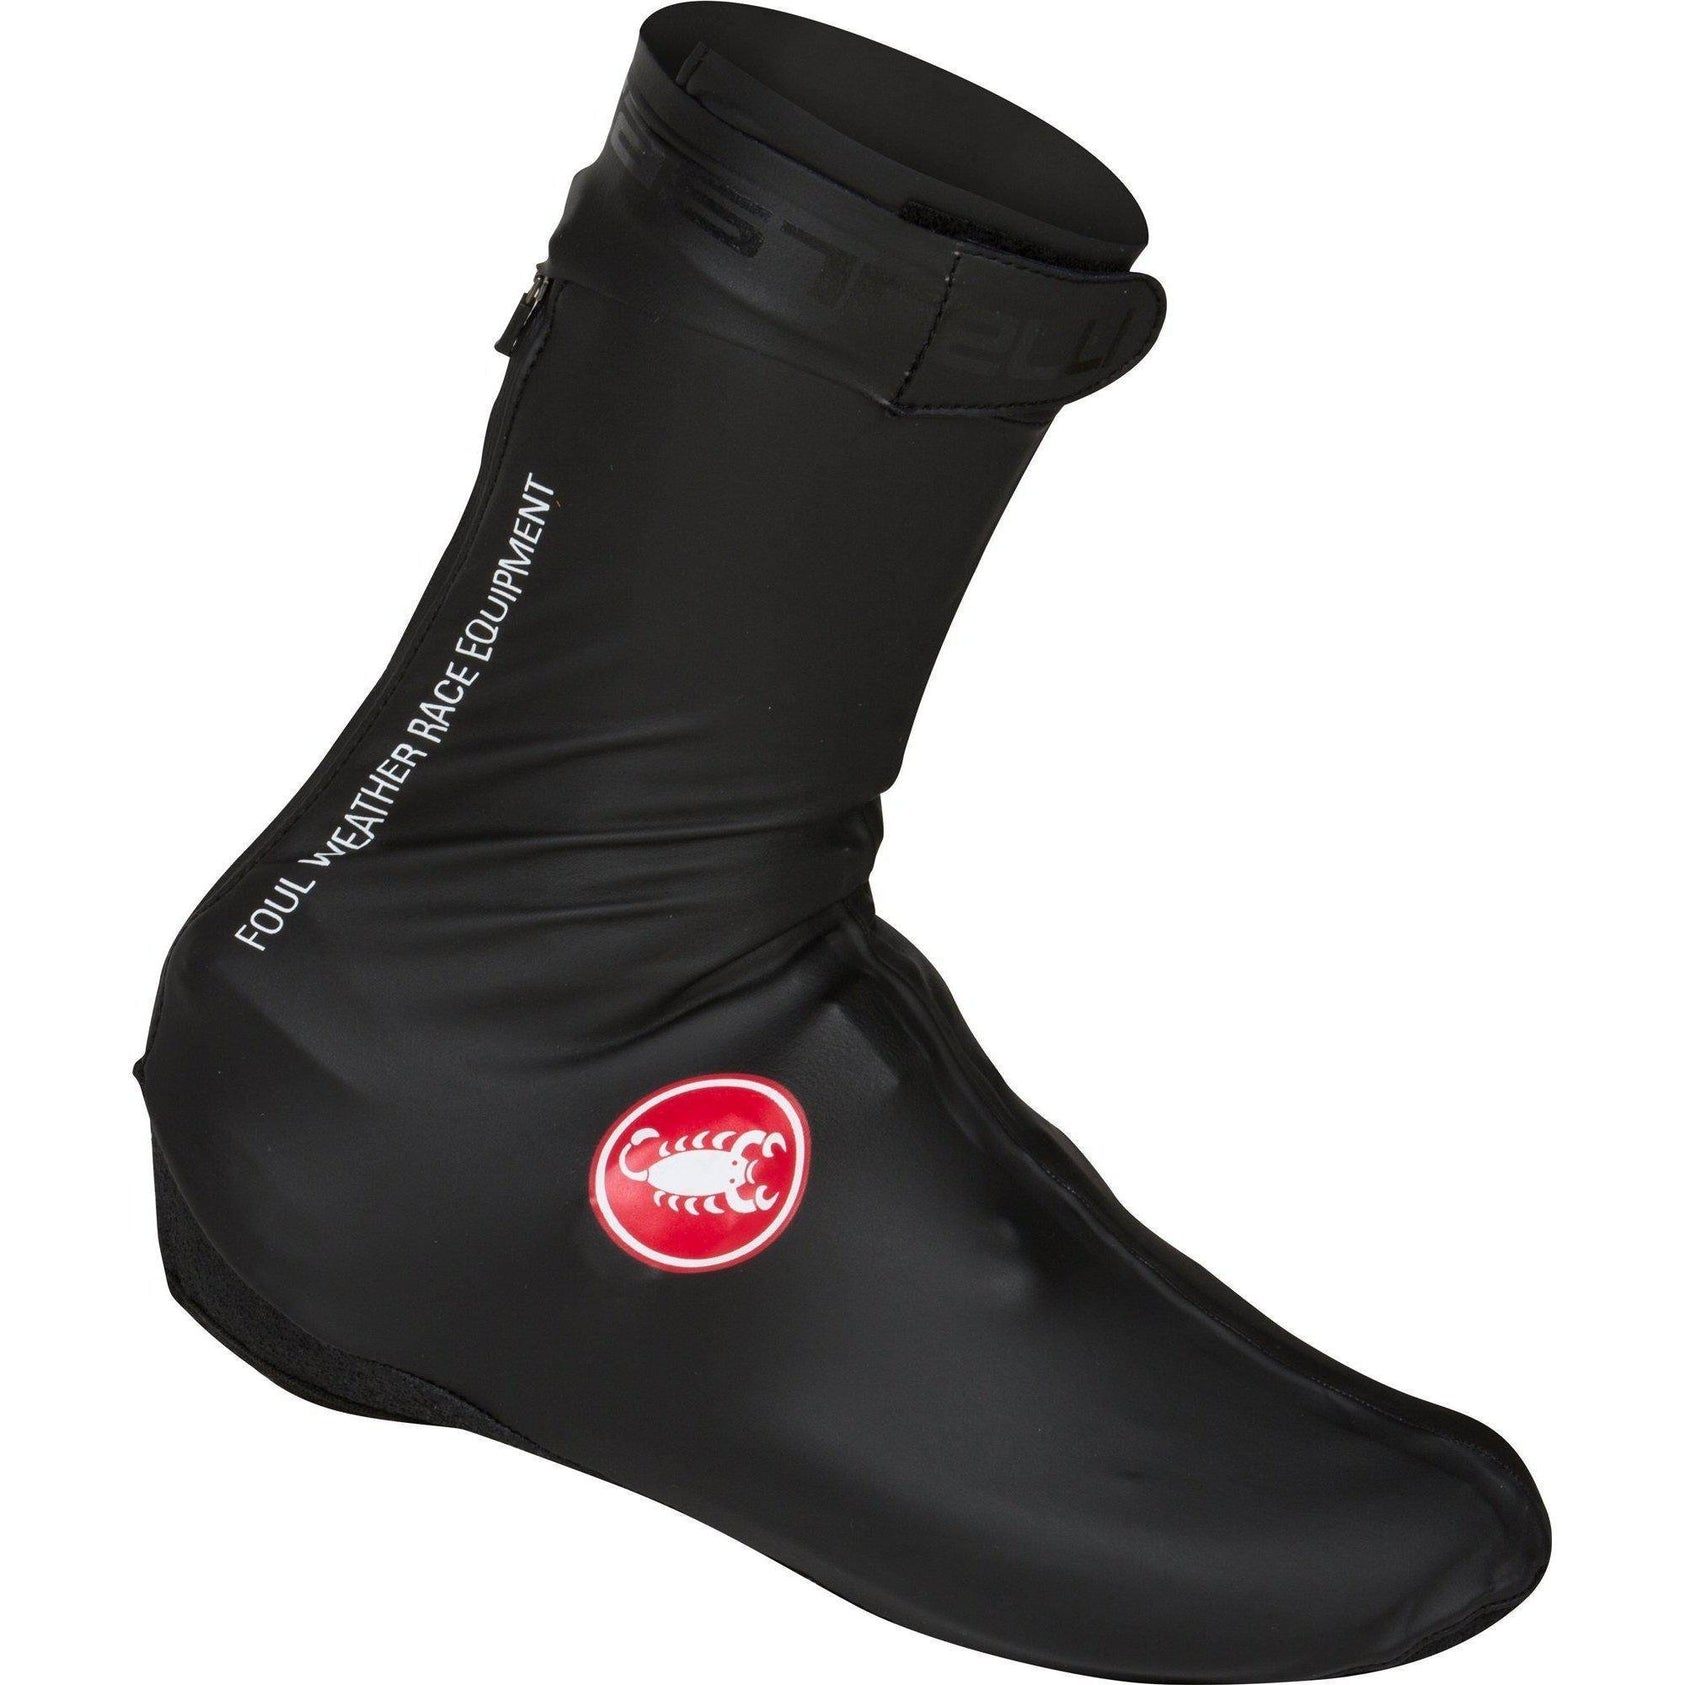 Overshoes - Castelli Pioggia 3 Waterproof Shoecover